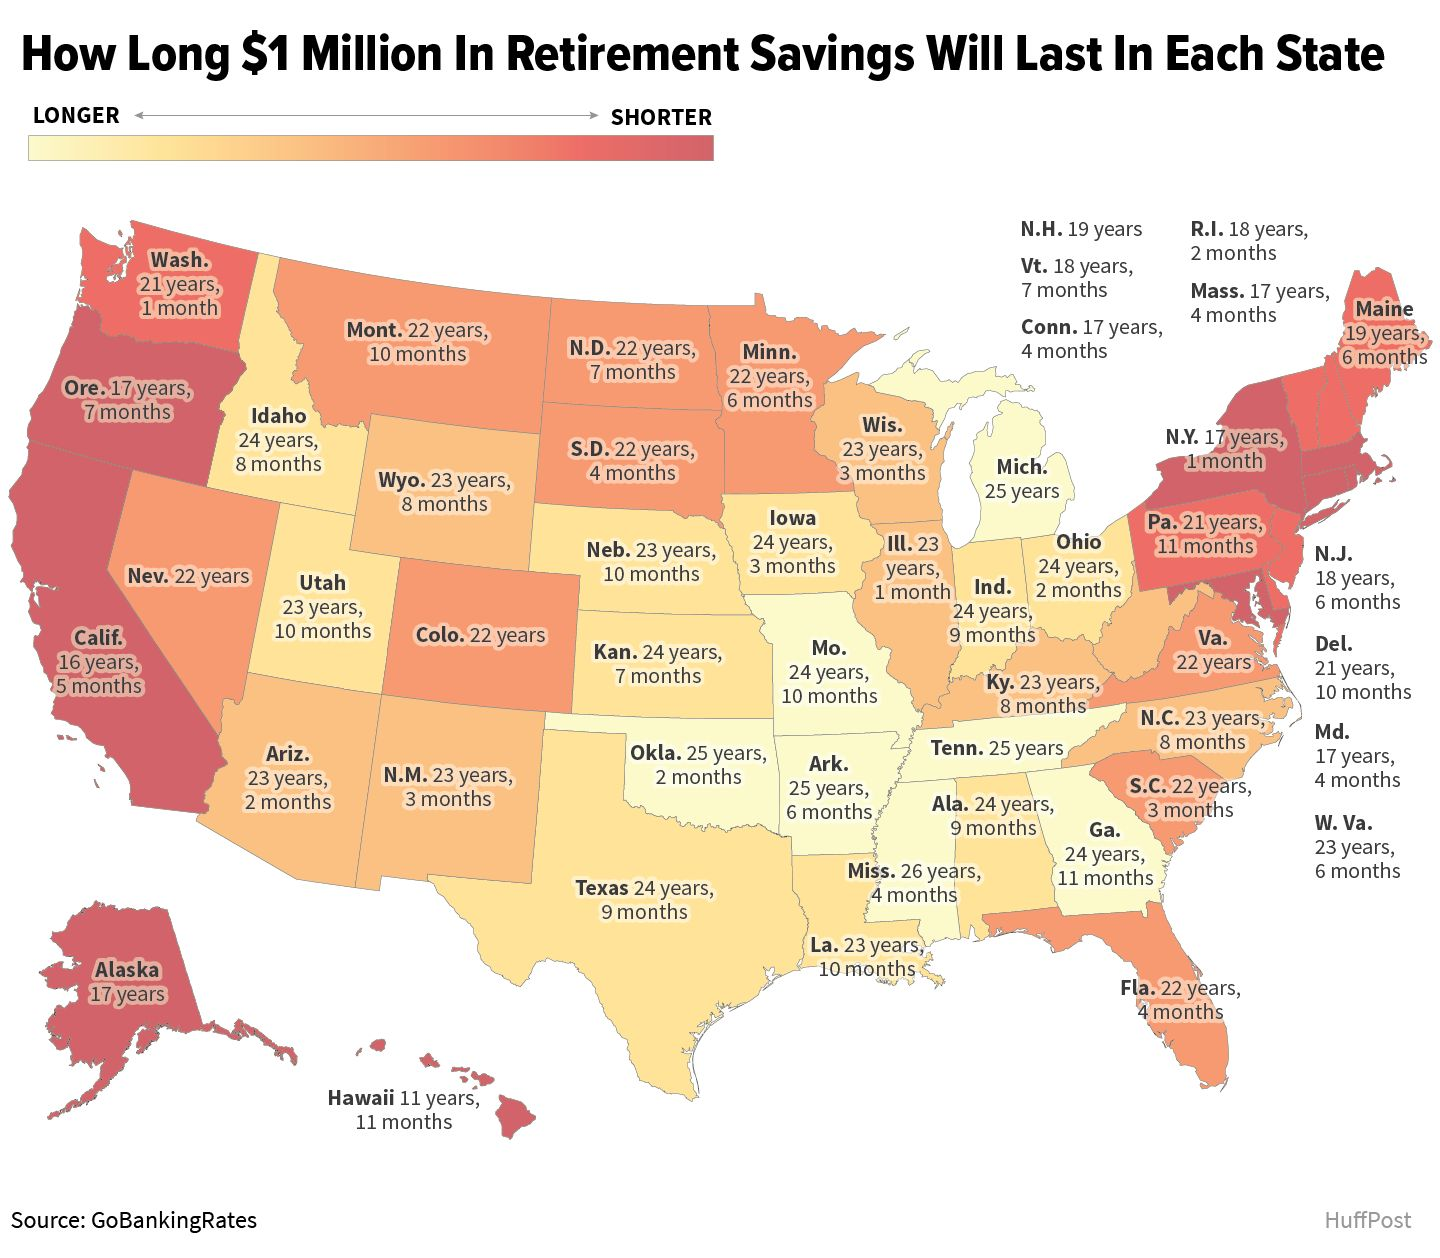 How long 1 million in retirement savings will last in each state 2017